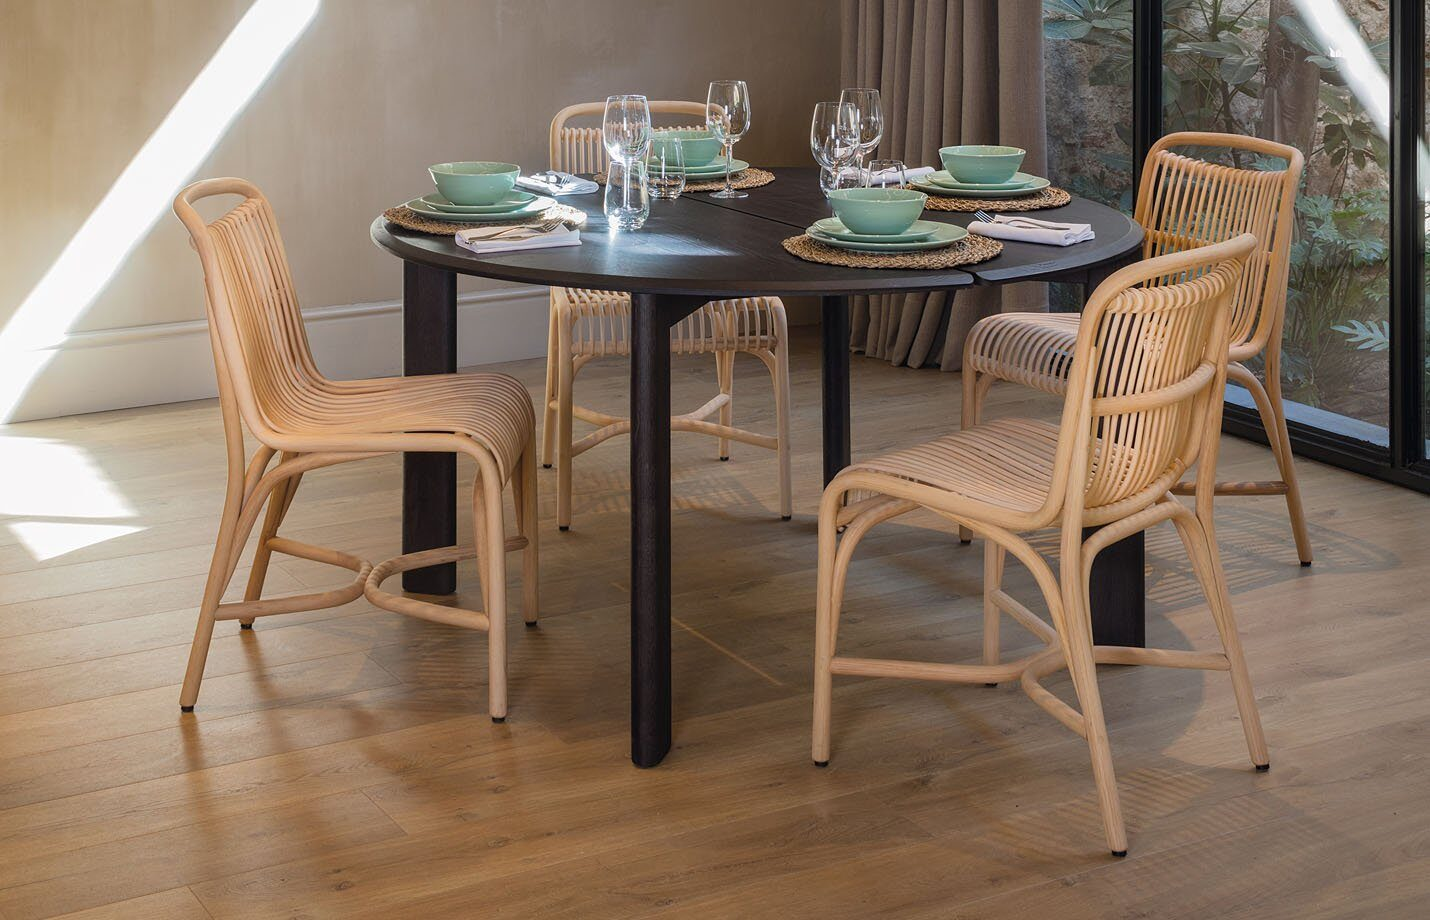 Gata-Rattan-dining-chair-Natural-LS1